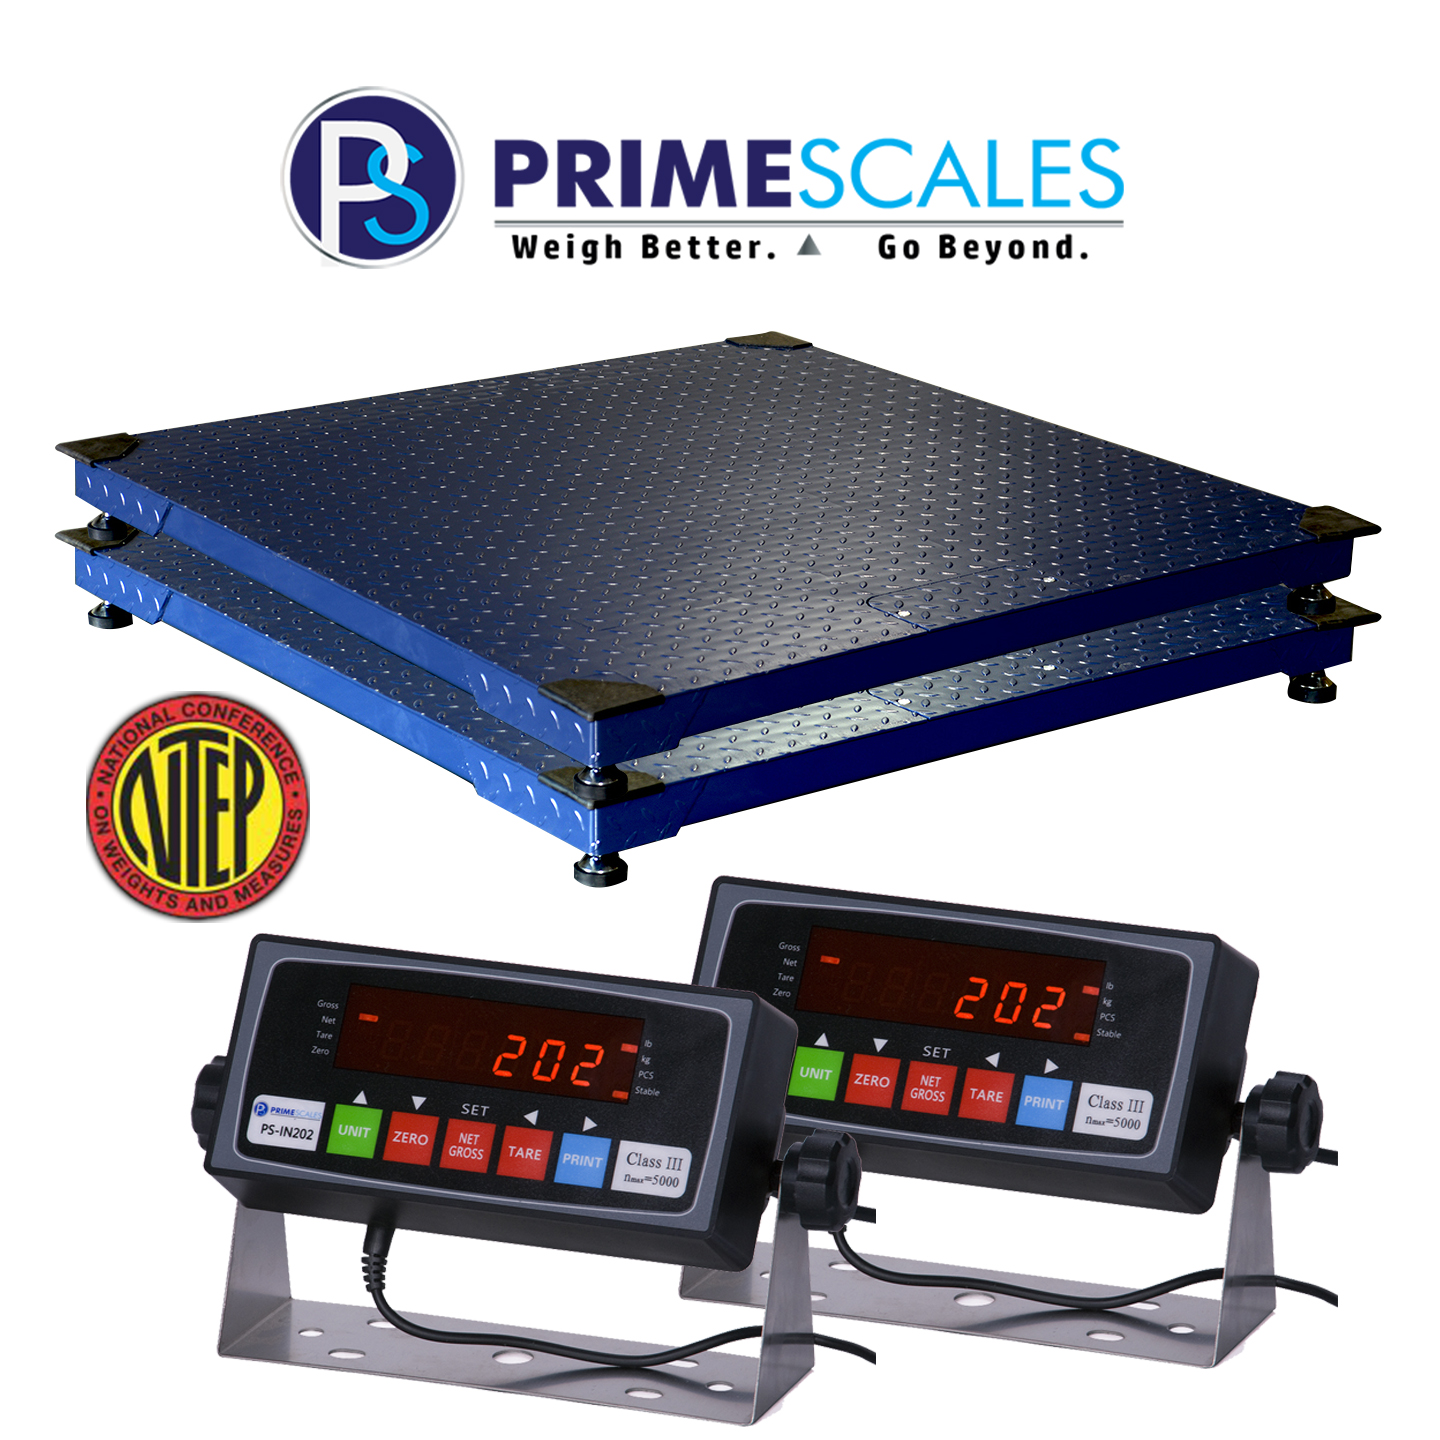 Prime Scales 4x4 Feet 10000x2lb My Scale FW4x4 Heavy Duty Legal For Trade (NTEP) Floor Scale + PSIN202 Indicator - Pack of 02